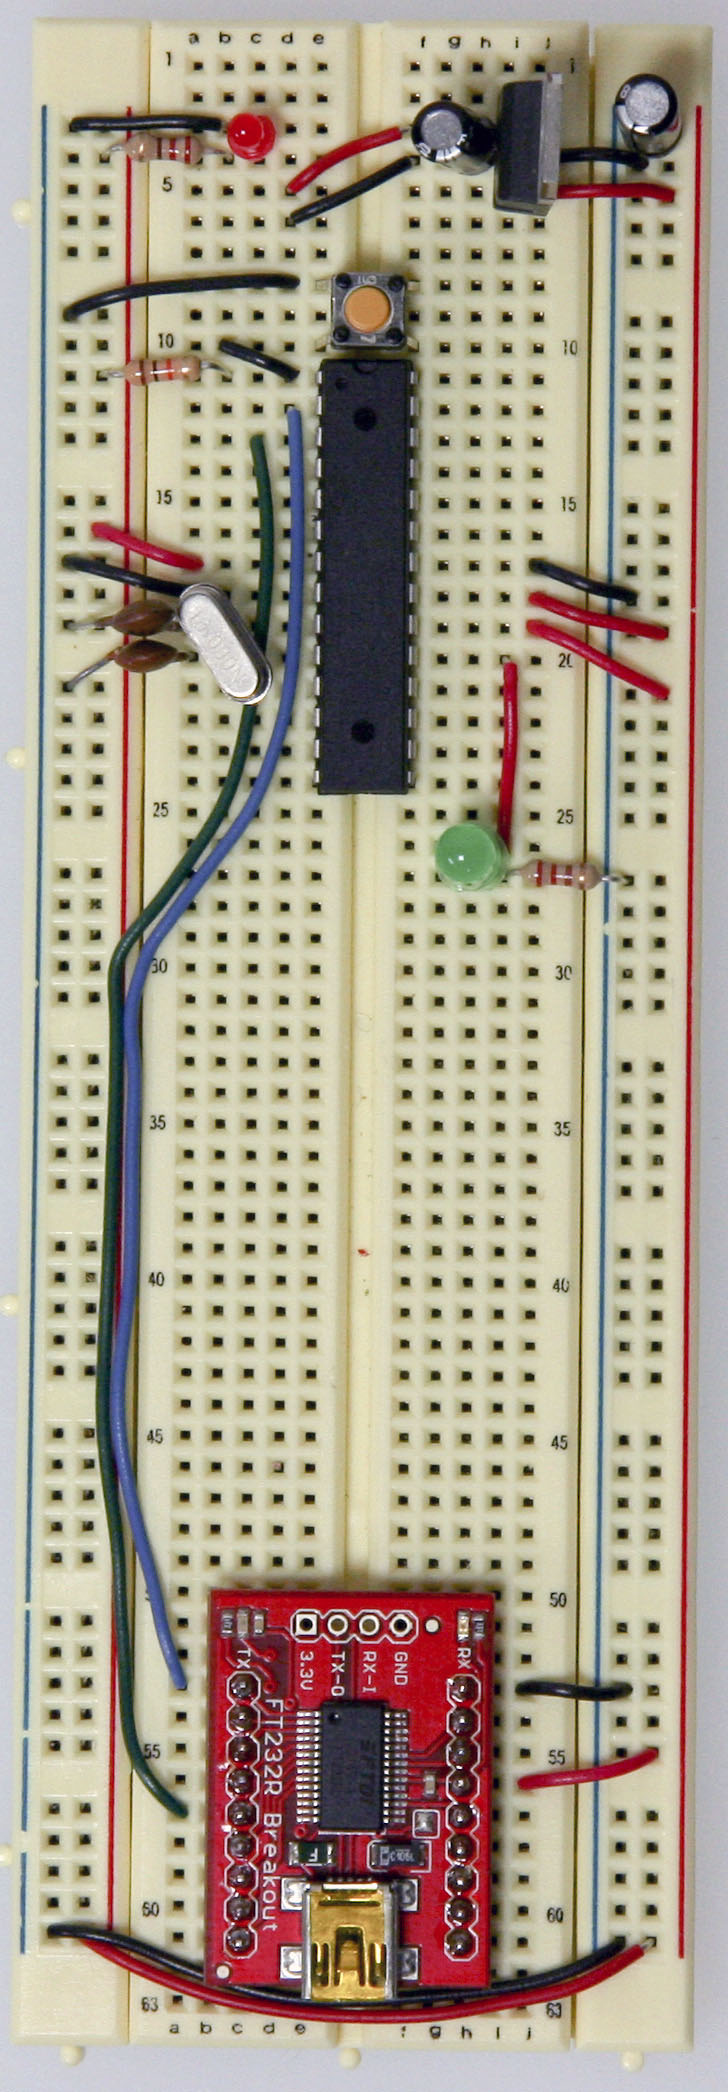 Arduino Setting Up An On A Breadboard Series Parallel Circuit Wiring Harness Diagram Txrx Connecting